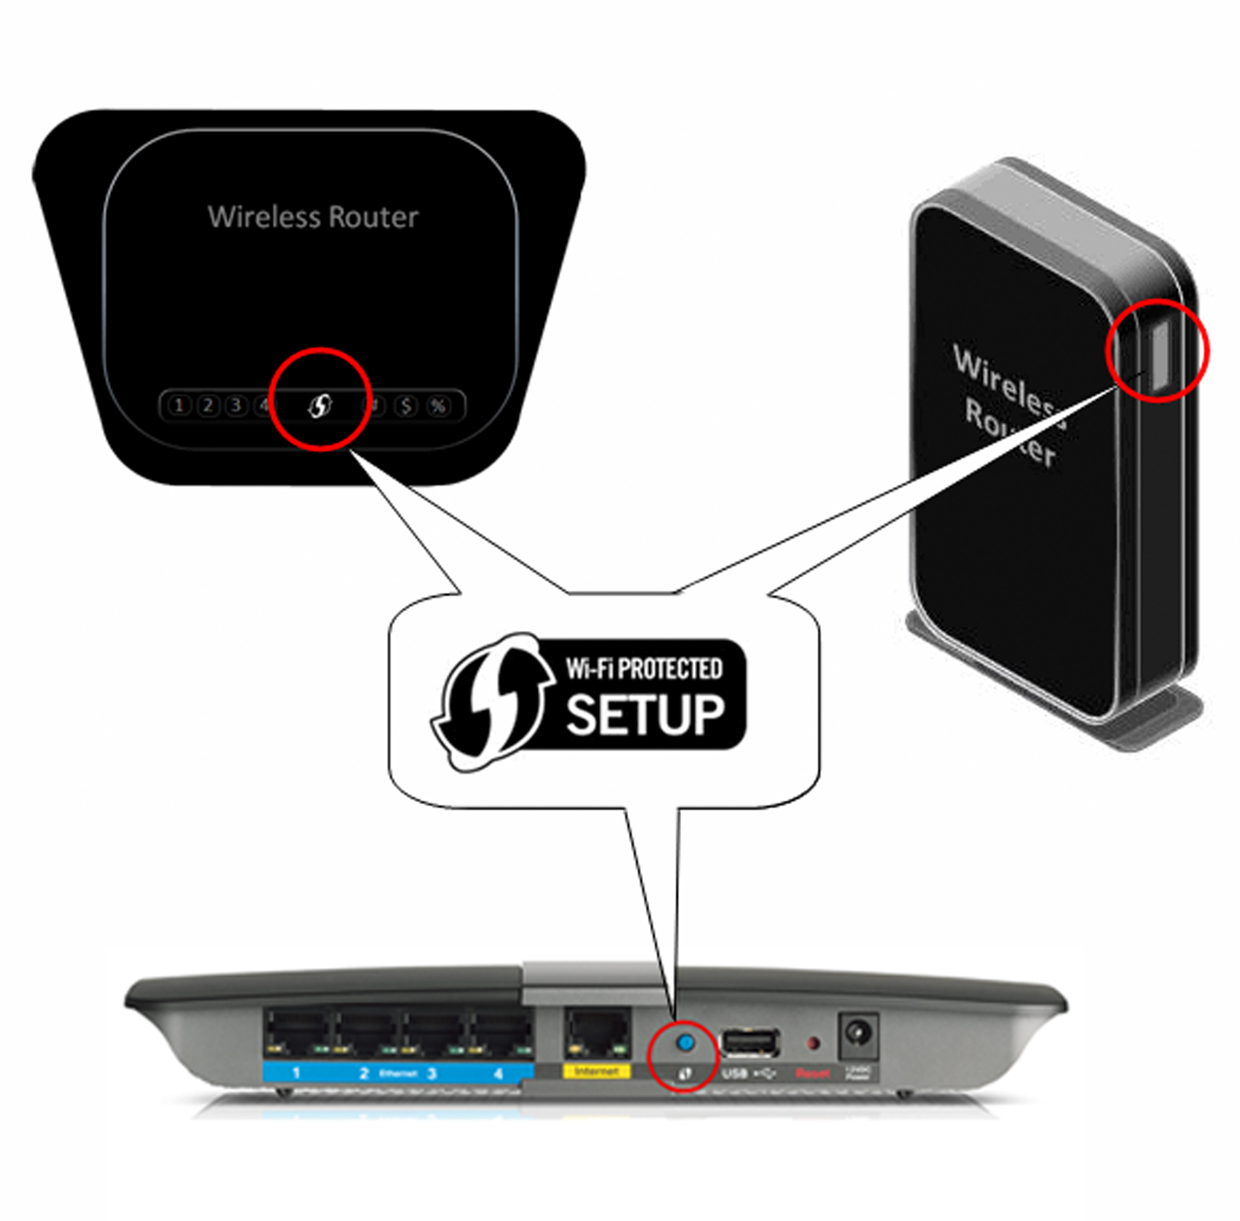 Routers with WPS Symbol